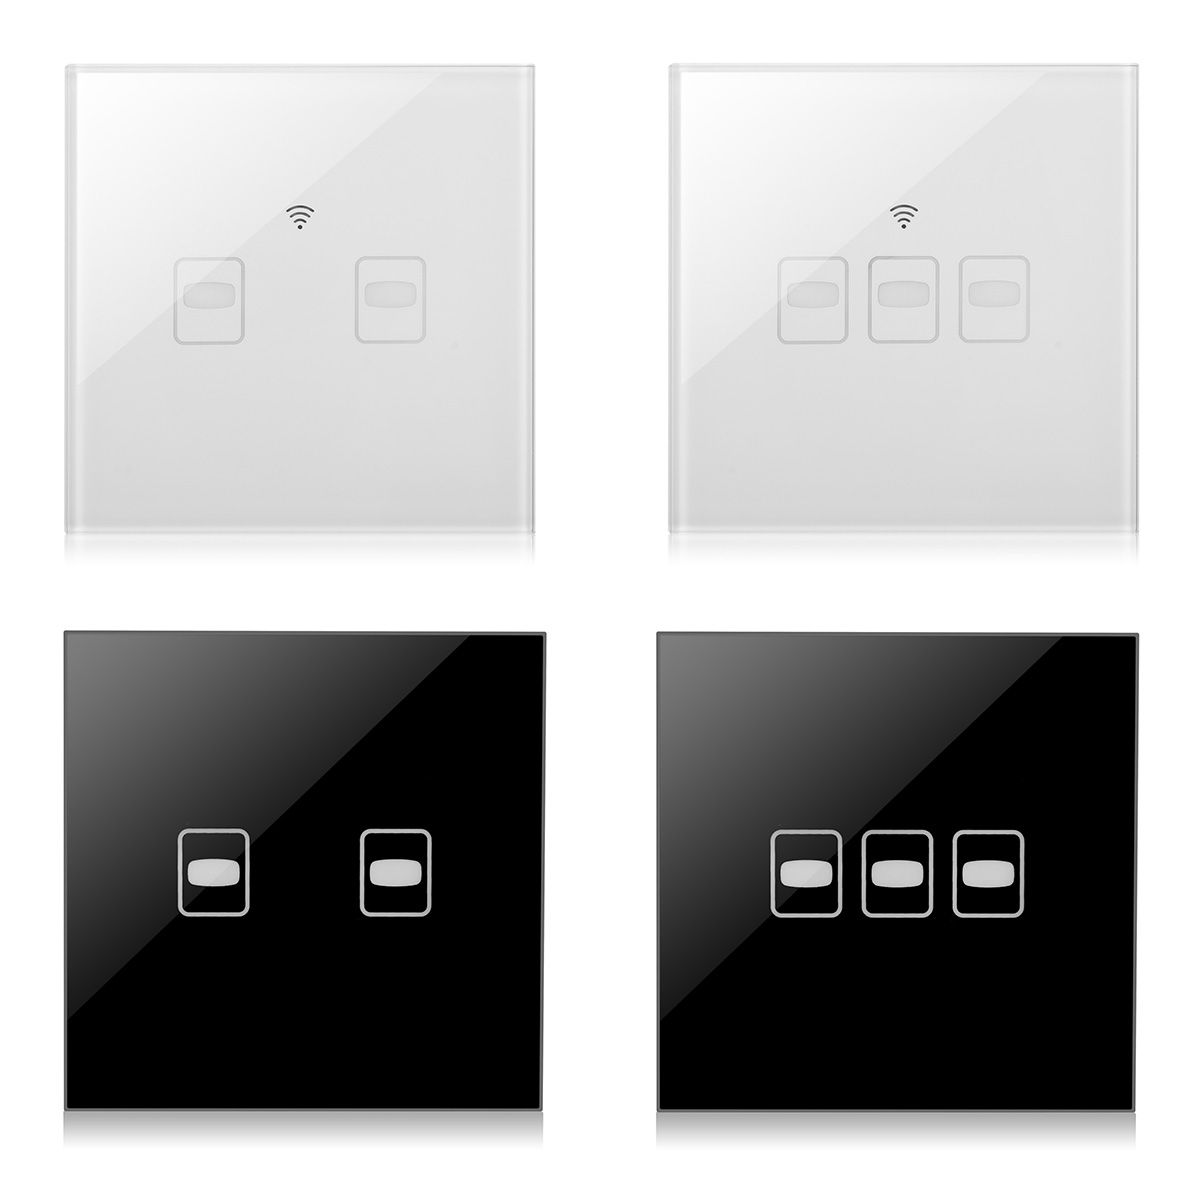 Ac110 265v 2 3 Gang Smart Touch Wall Light Switch Panel With Remote Control Eu Standard Light Accessories Light Switch Remote Control